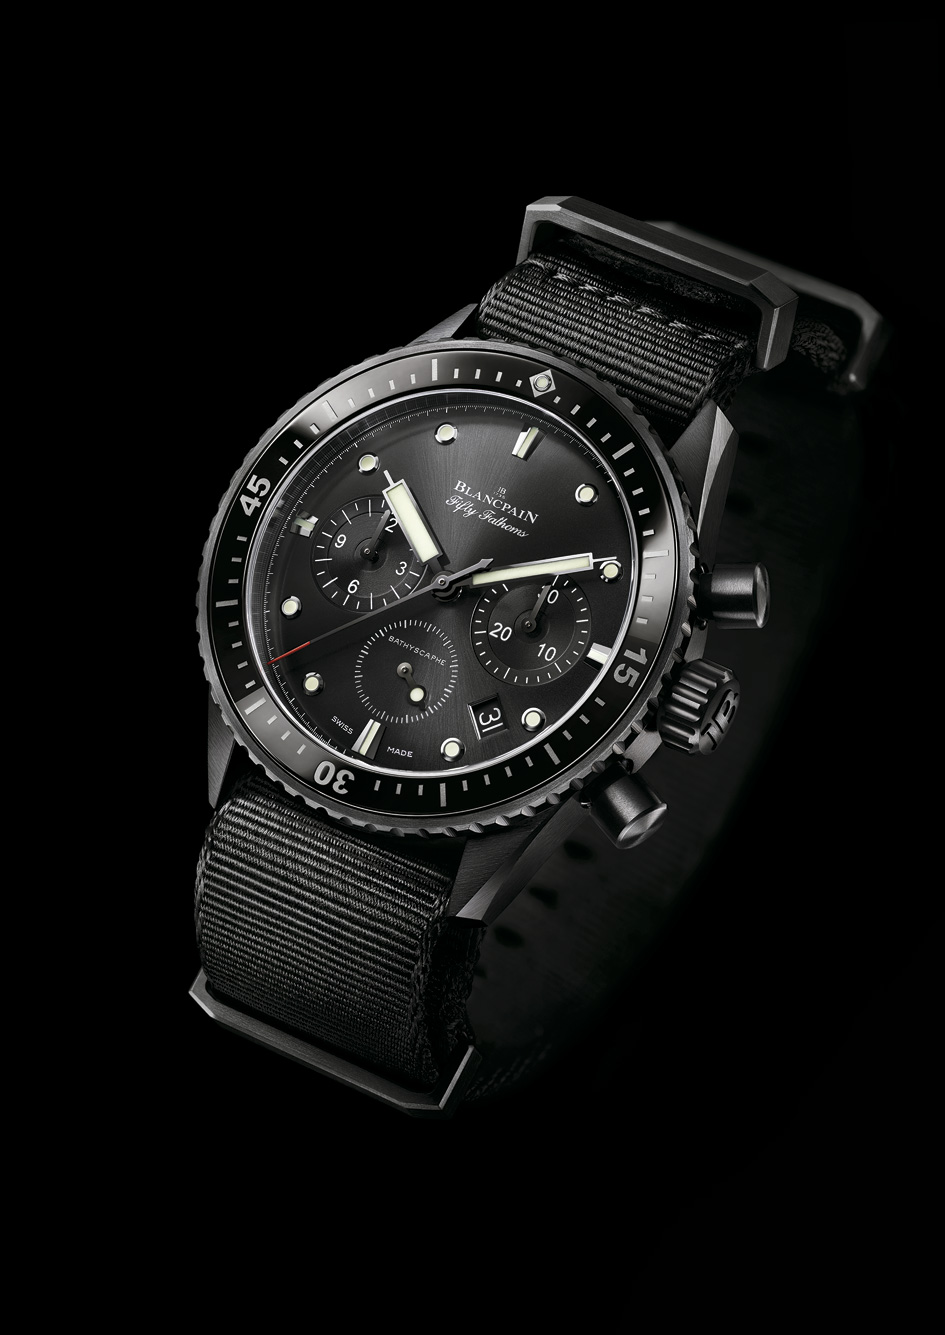 Fifty Fathoms Bathyscaphe Chronographe Flyback perfil